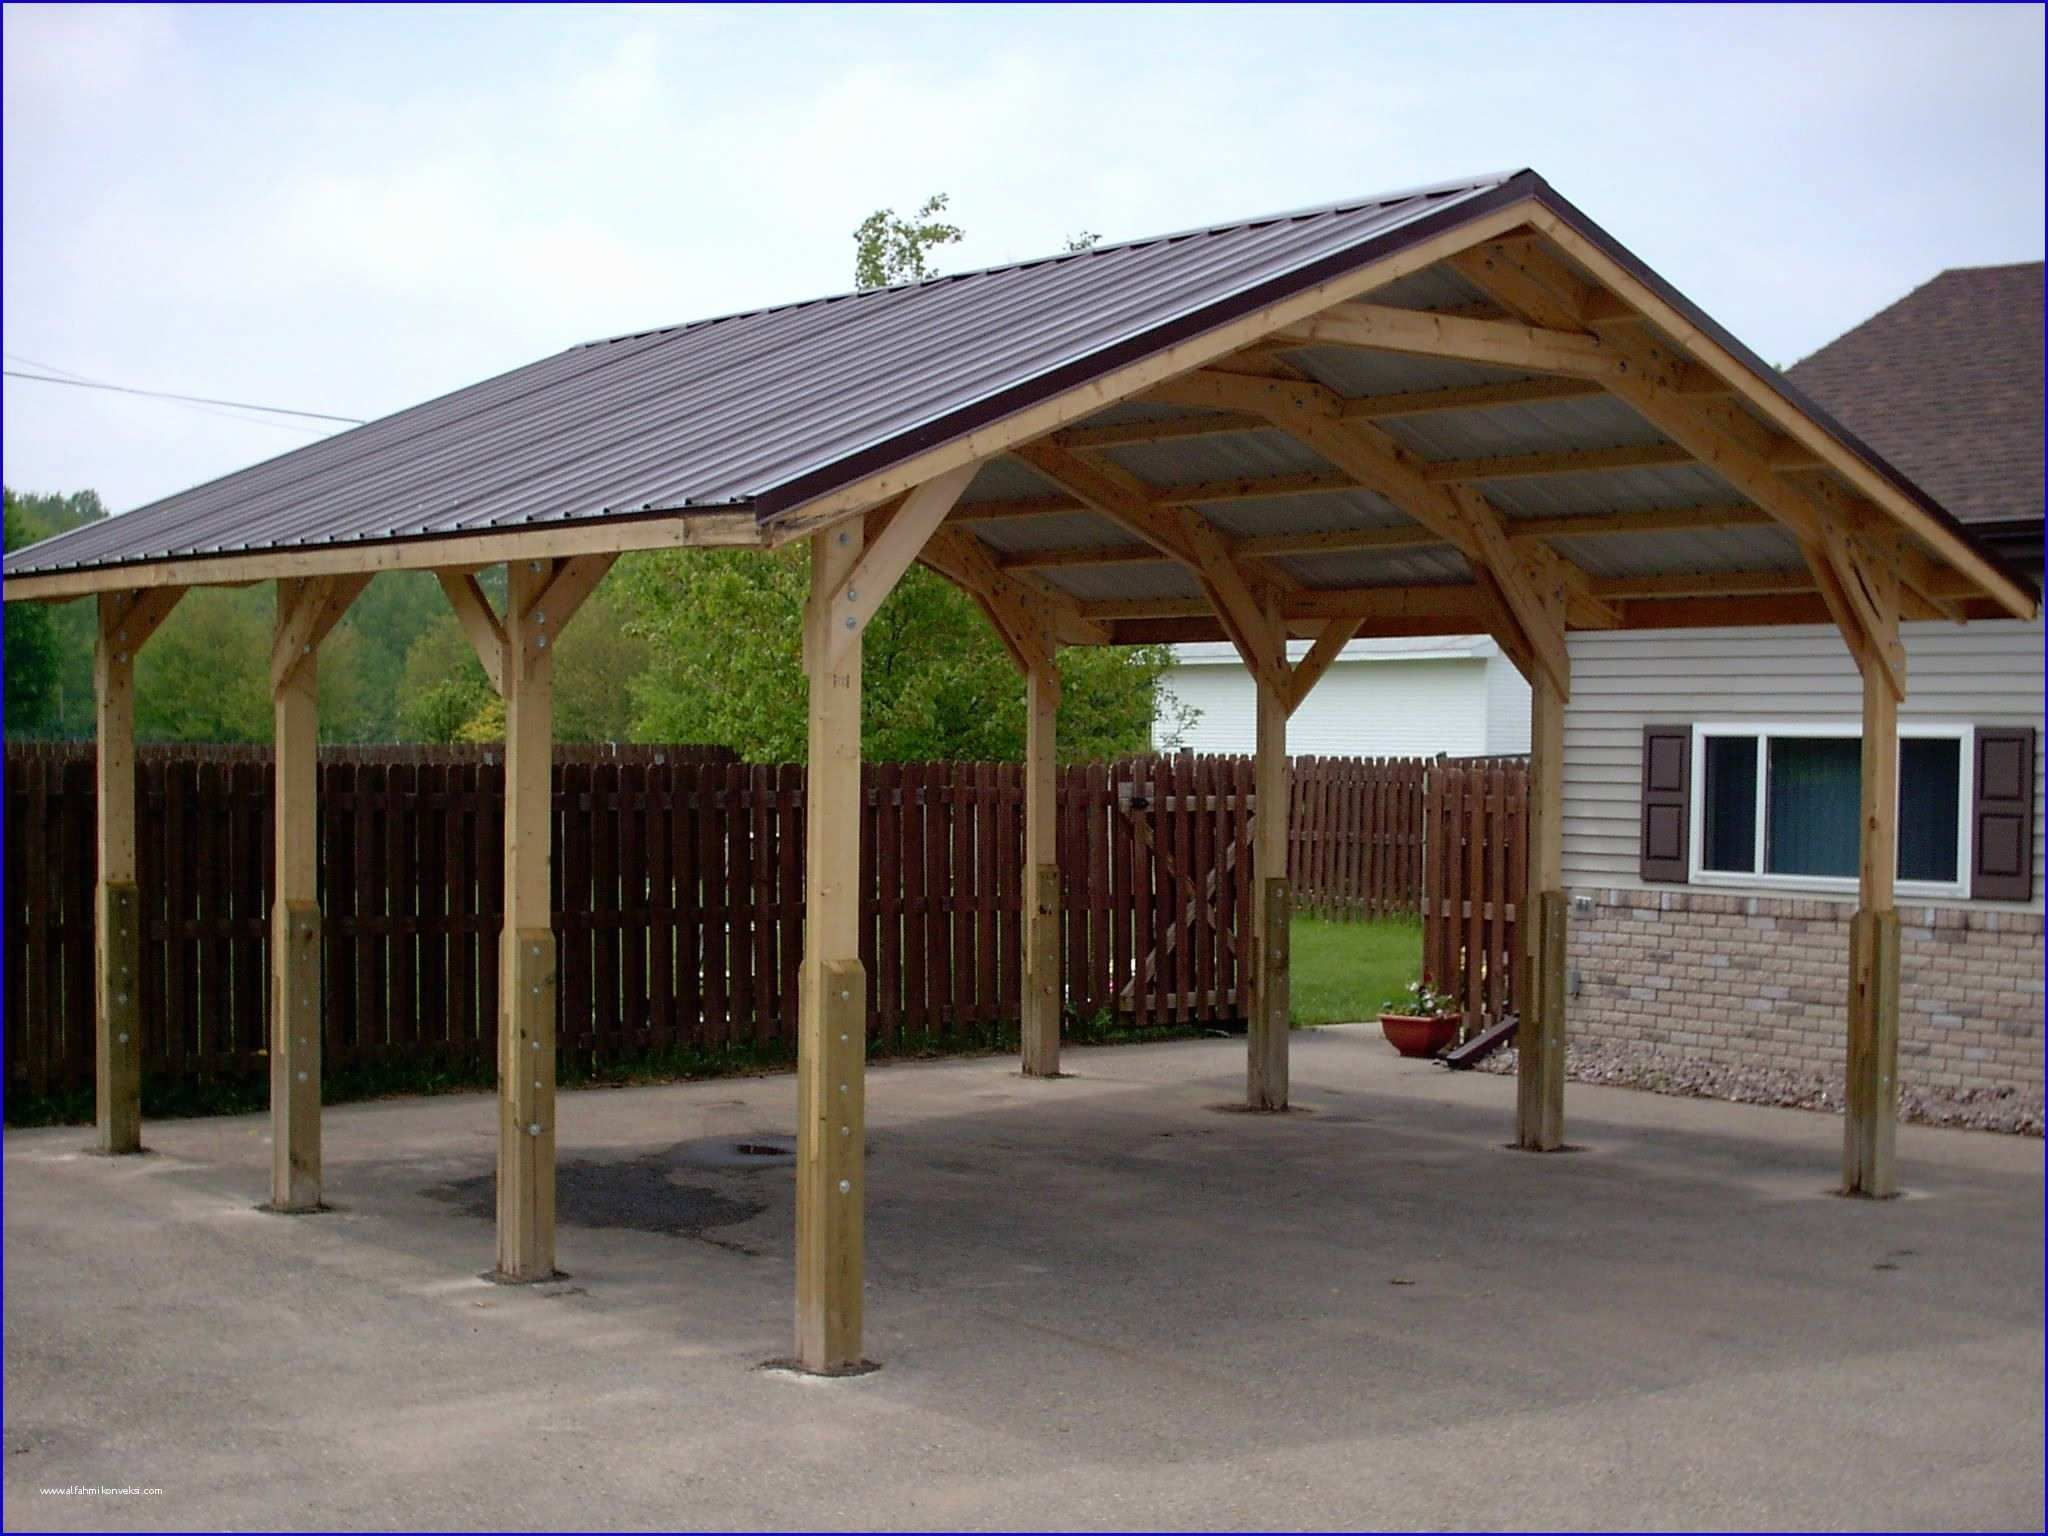 Cheap Carports Carport Garage Portable Carport Diy Carport Palram Carport Wood Carport House Carport Cheap Ca With Images Carport Designs Diy Carport Carport Garage